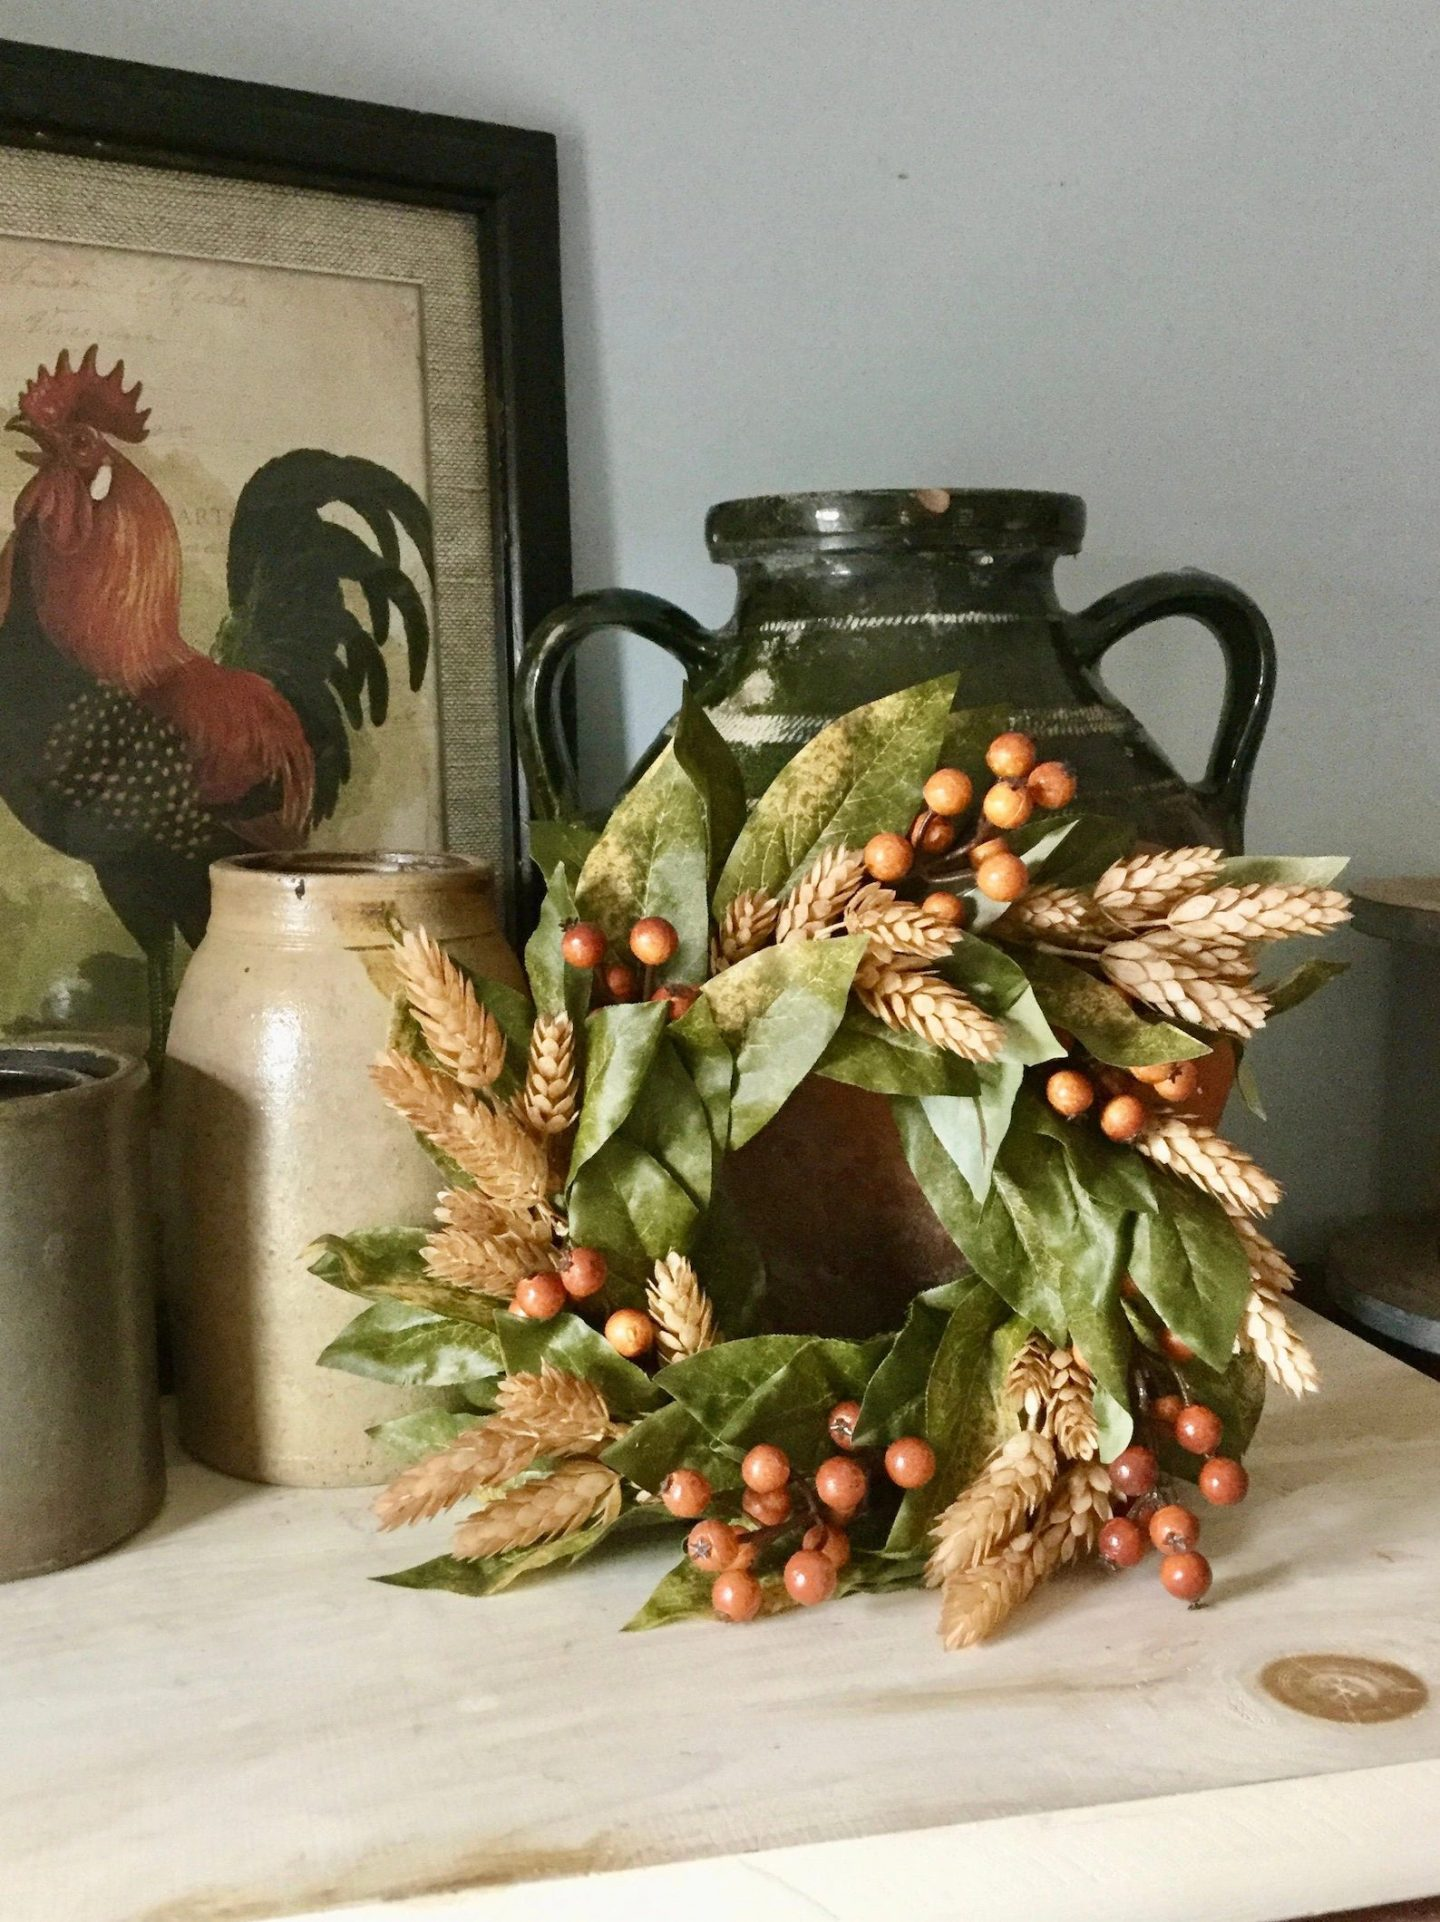 Cute rustic candle wreath with wheat and magnolia